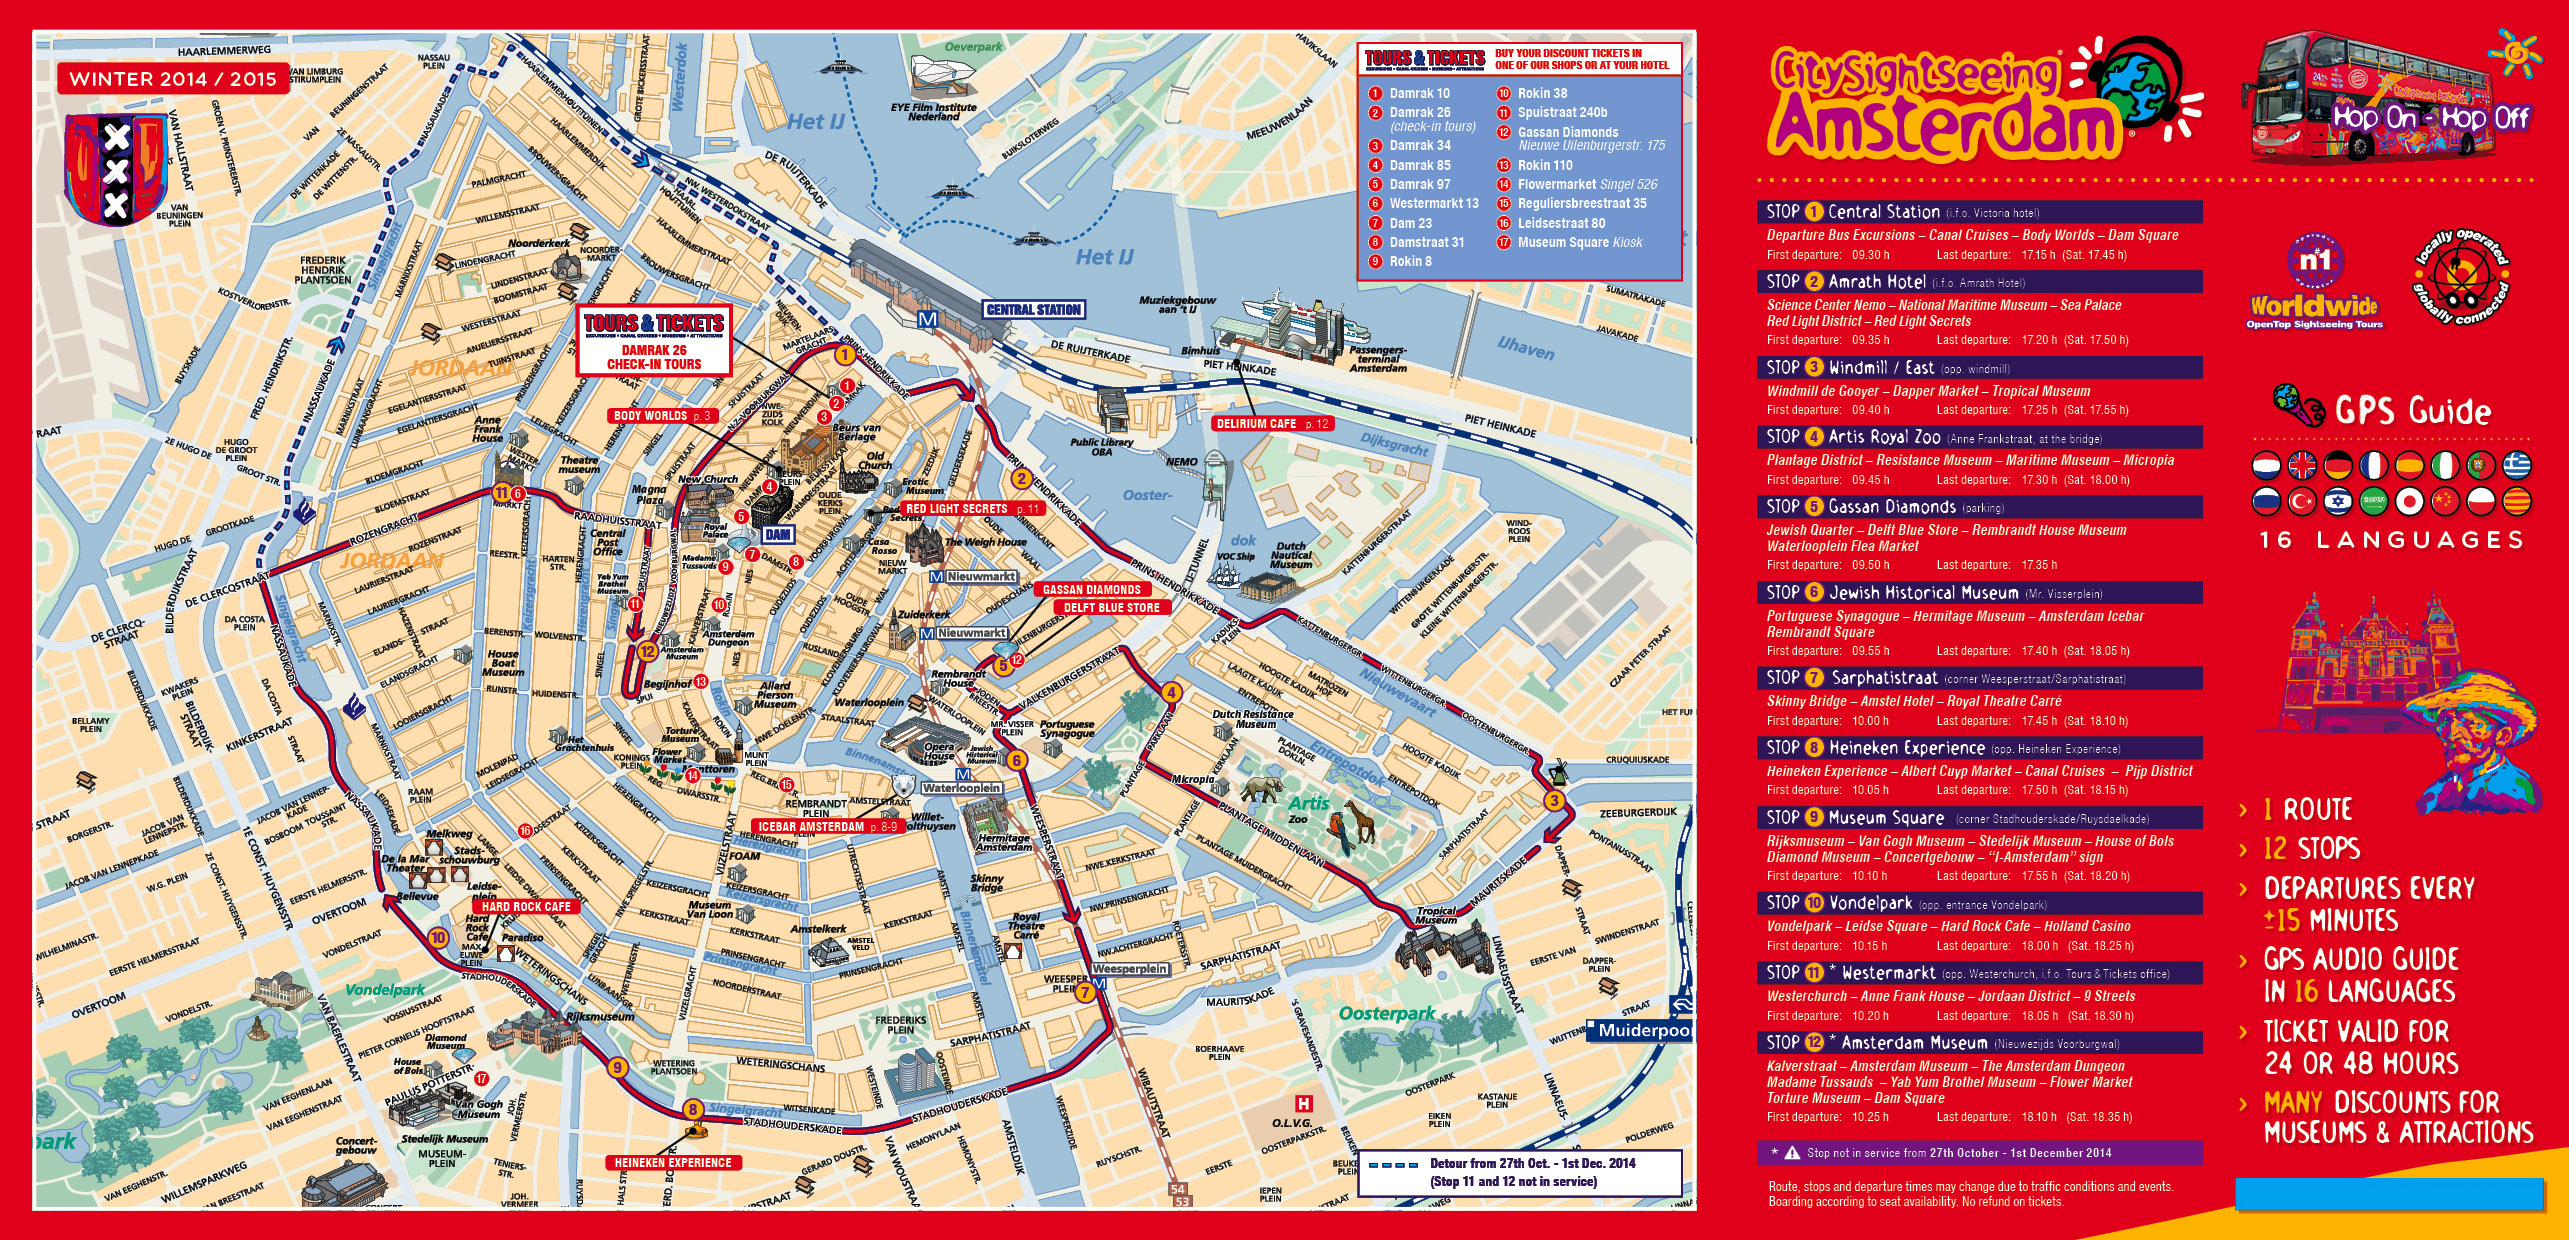 Amsterdam Hop On Hop Off Bus Tour - AttractionTix